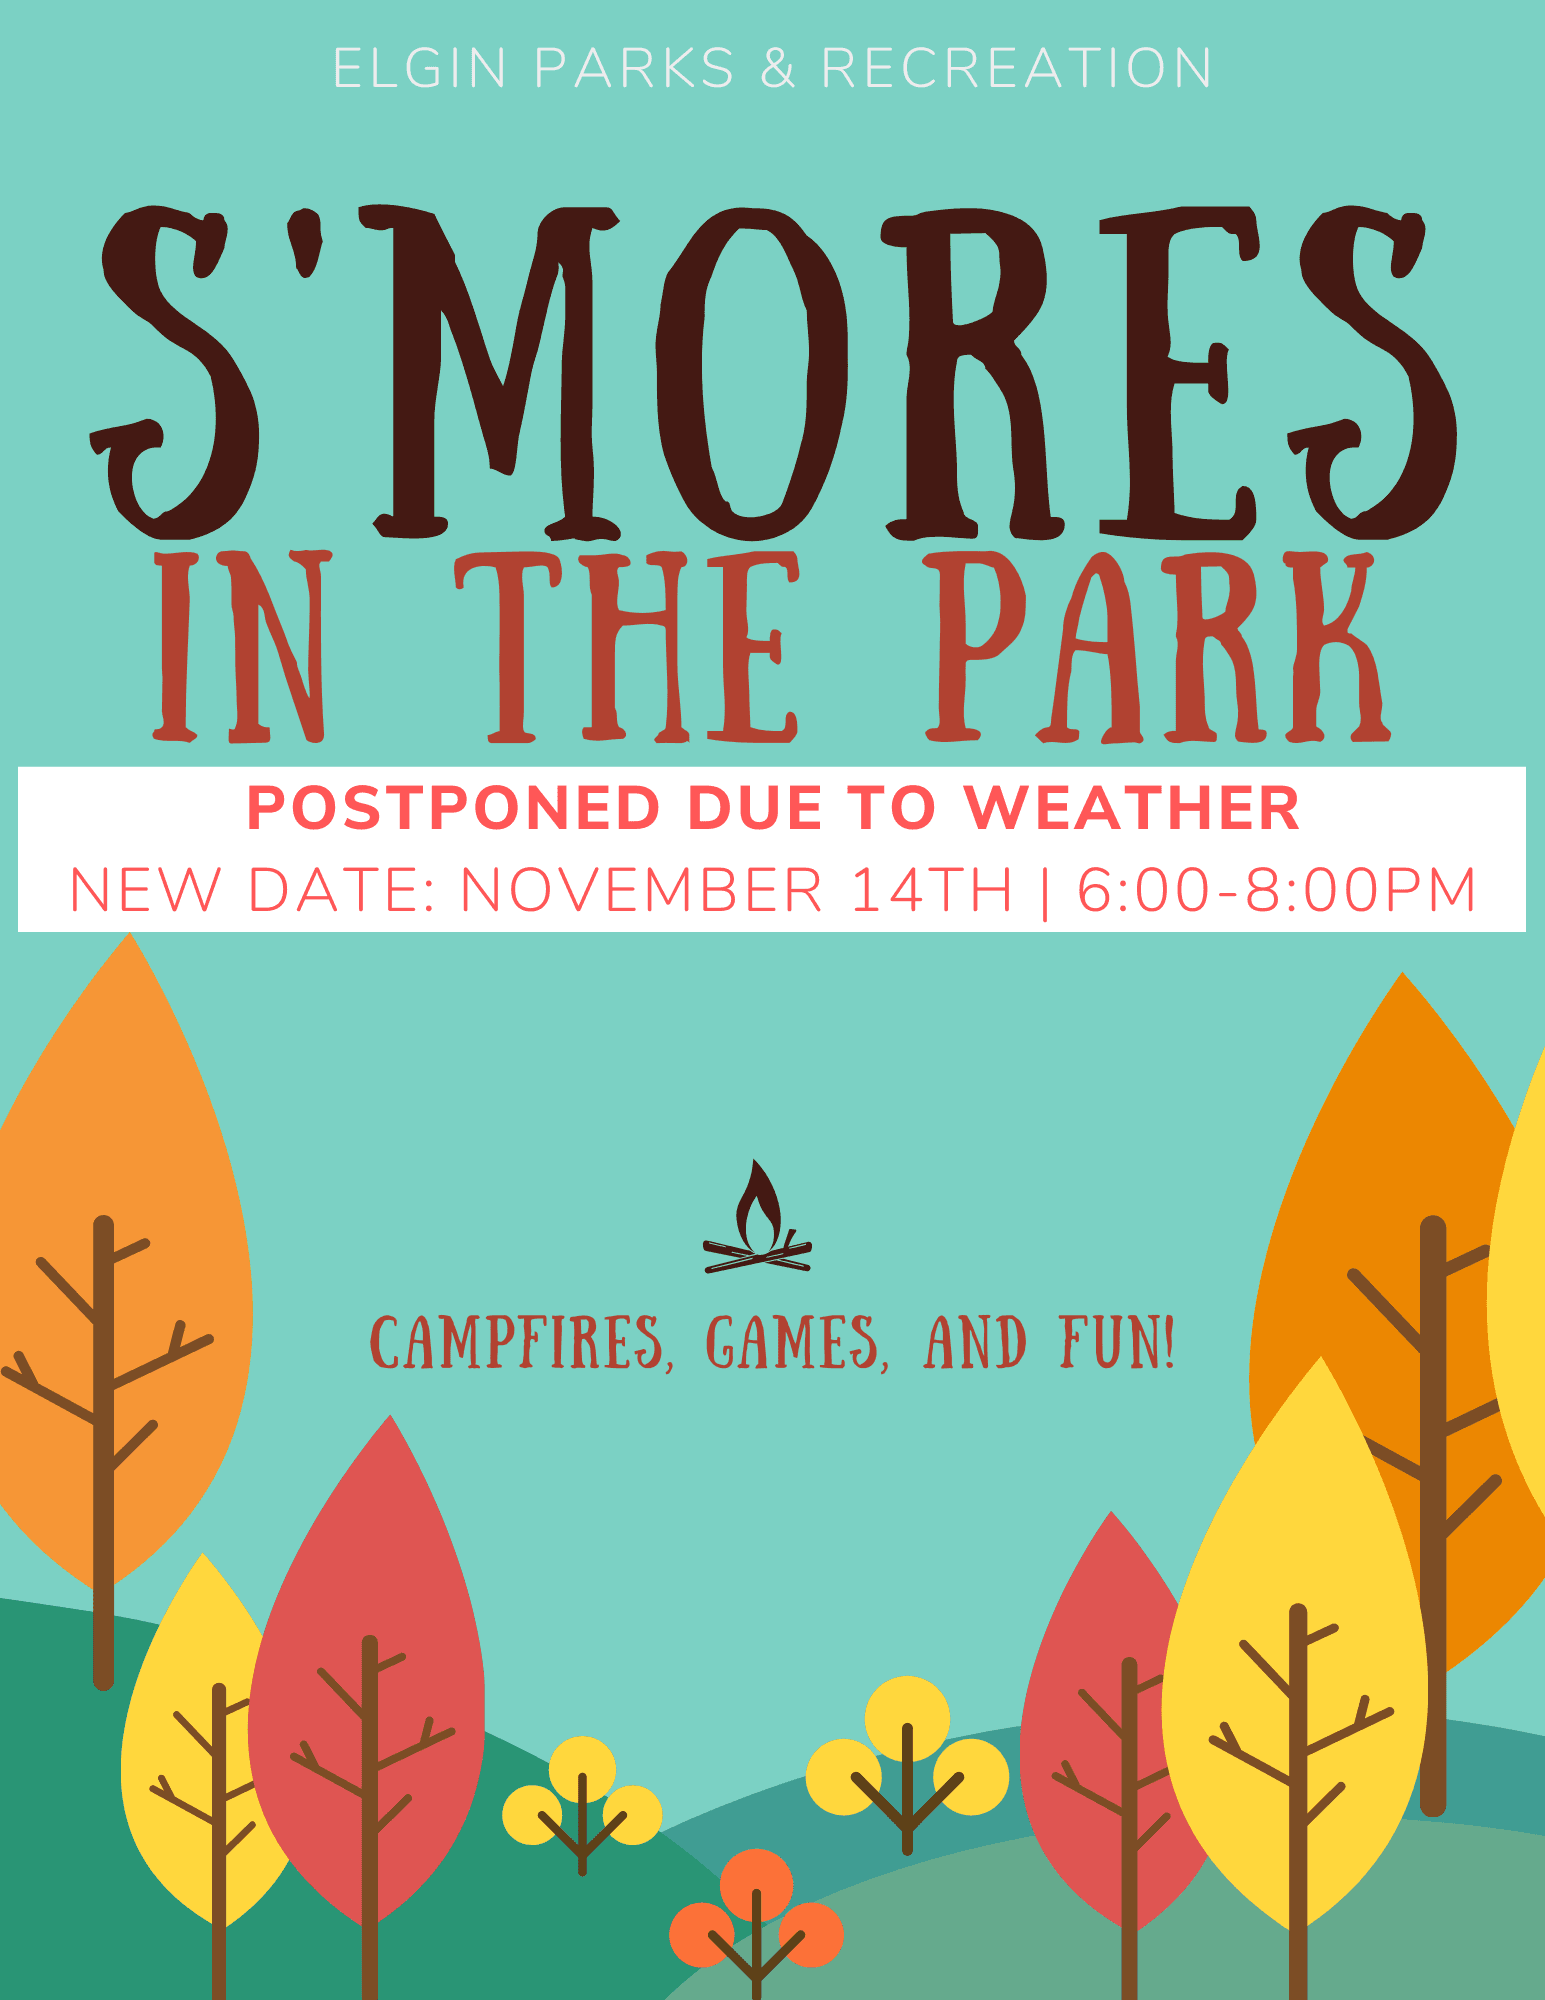 Smores in the Park Poster